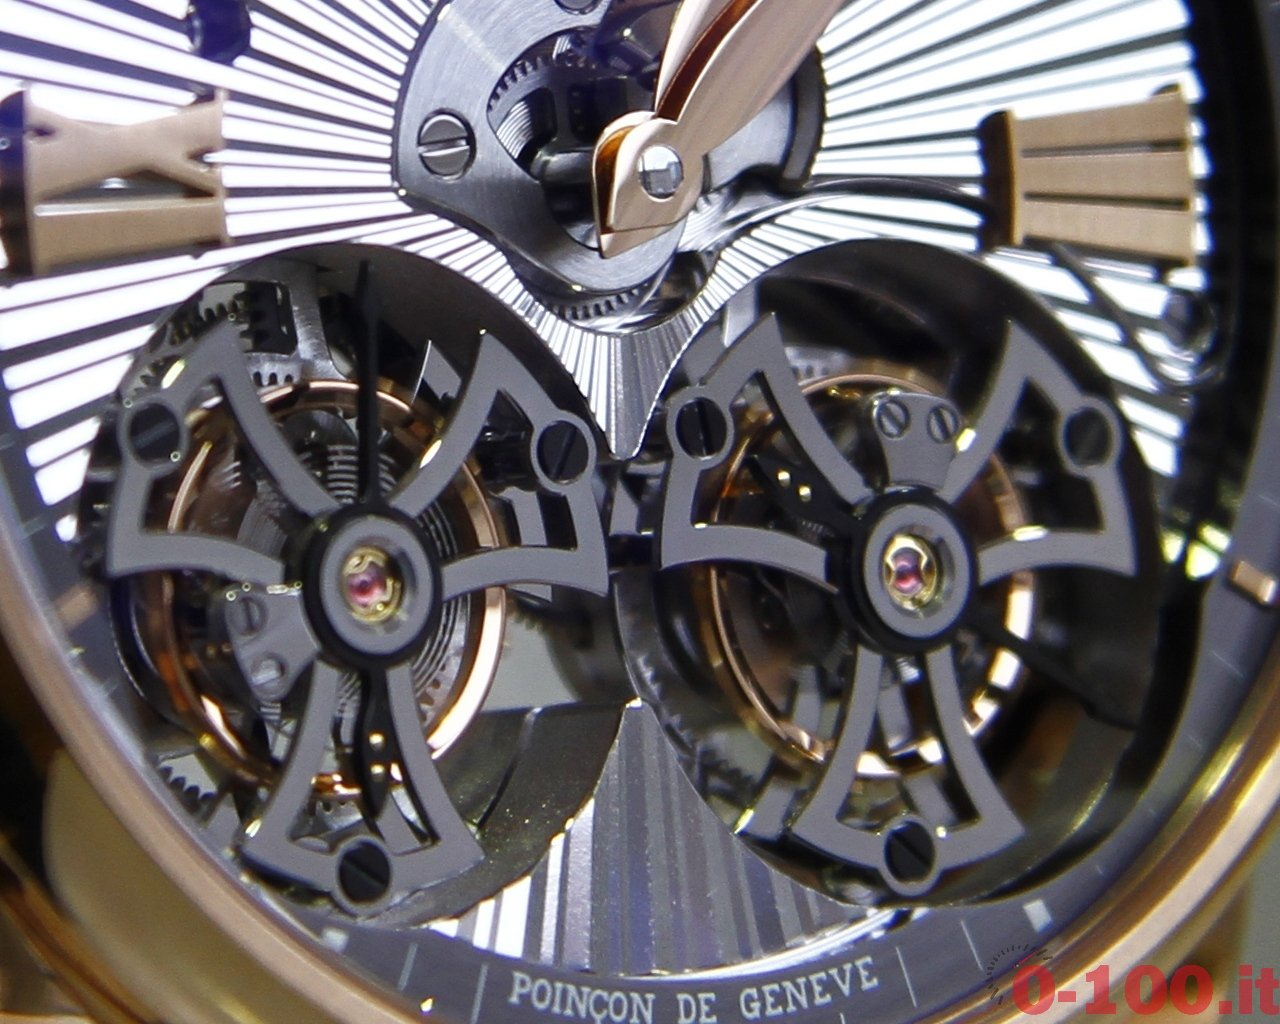 roger-dubuis-hommage-double-flying-tourbillon-0-100_27